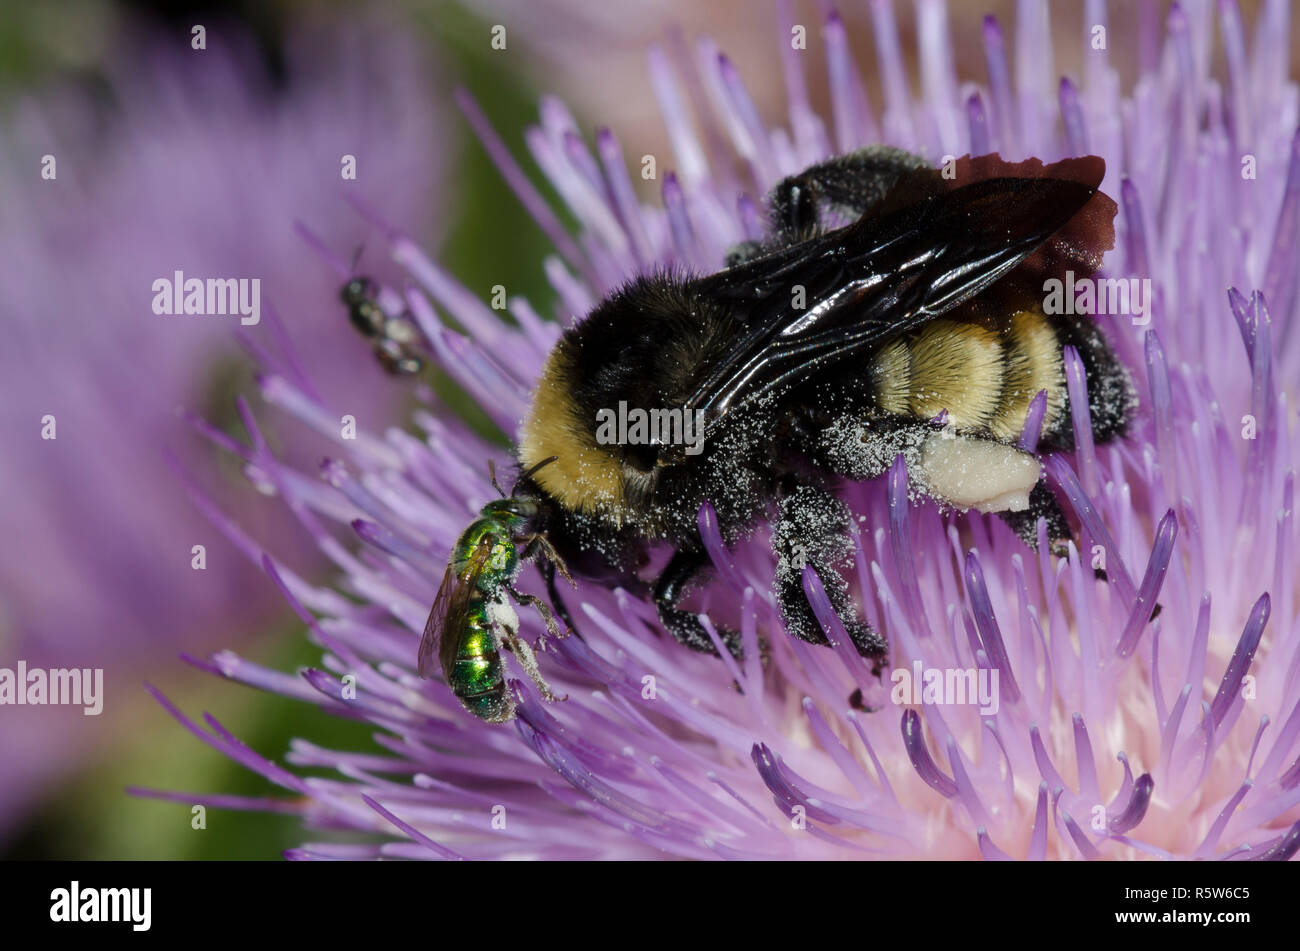 American Bumble Bee, Bombus pensylvanicus,  and Sweat Bee, Family Halictidae, on tall thistle, Cirsium altissimum - Stock Image